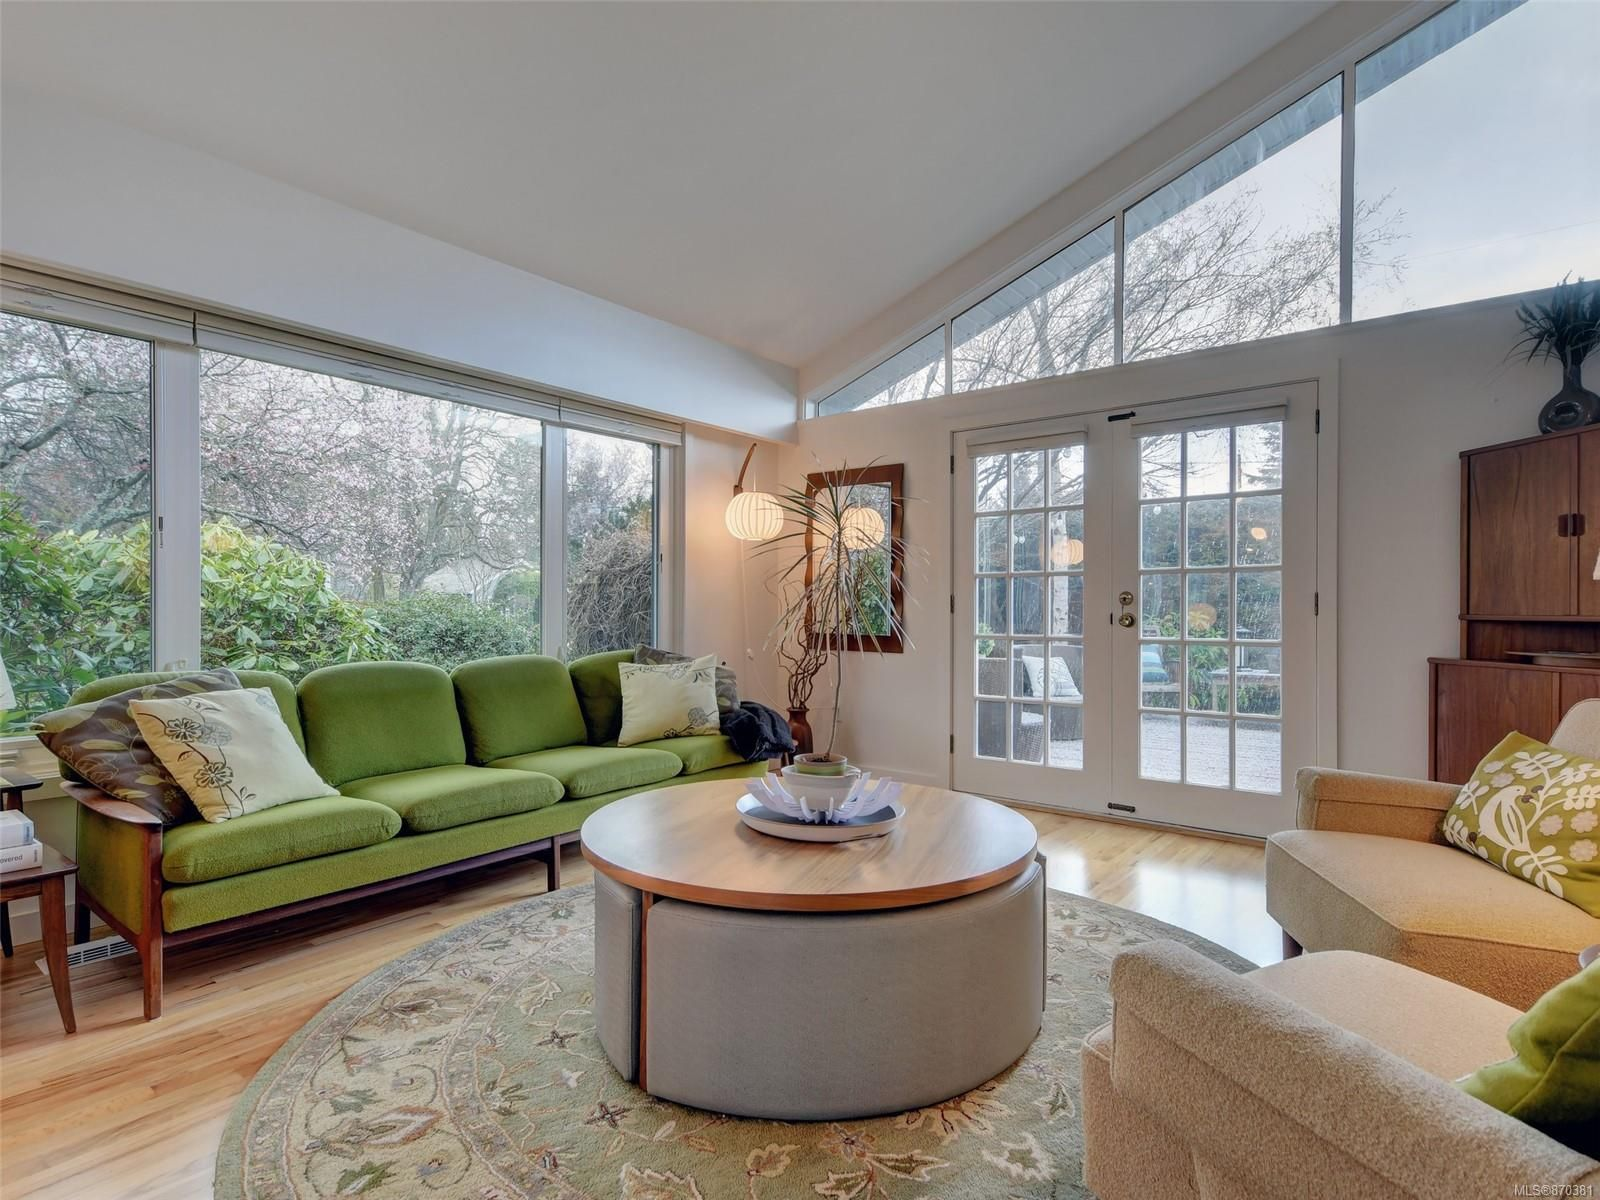 Living room has lots of natural light